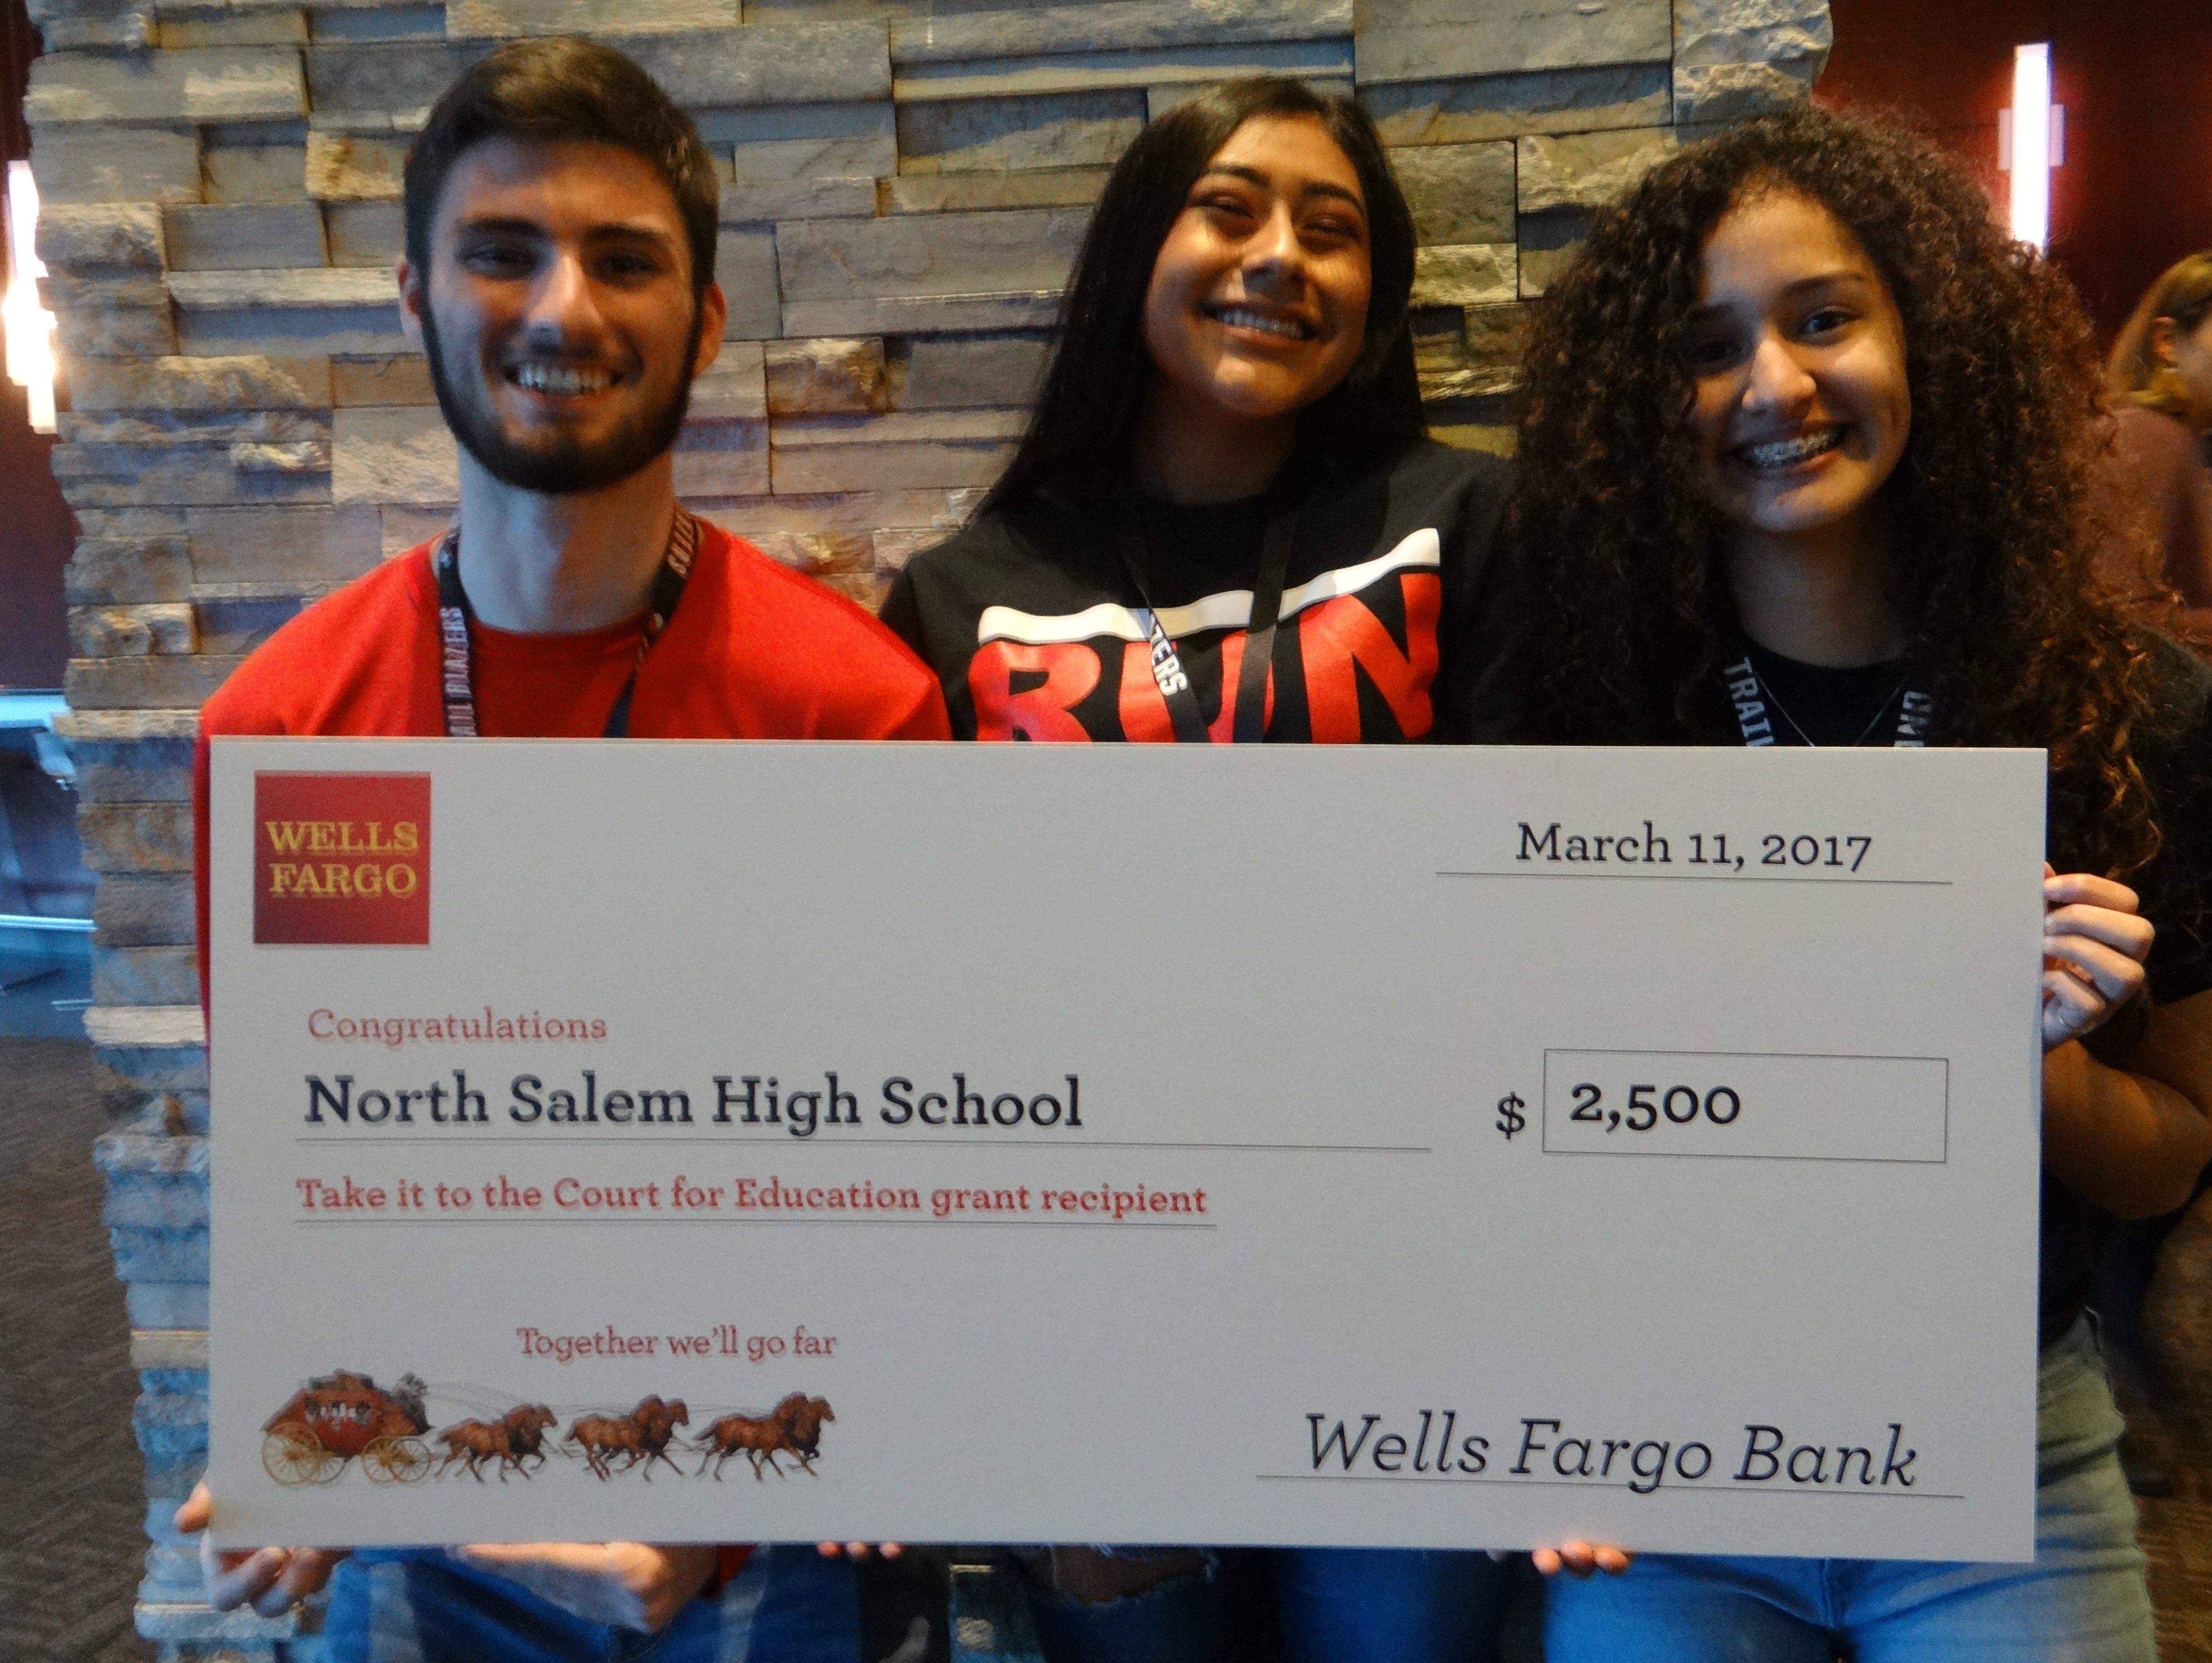 North Salem students from left, Jayden Meade, Shania Nunez and Dana Romero received a $2,500 grant from the Trail Blazers on Saturday at Moda Center.